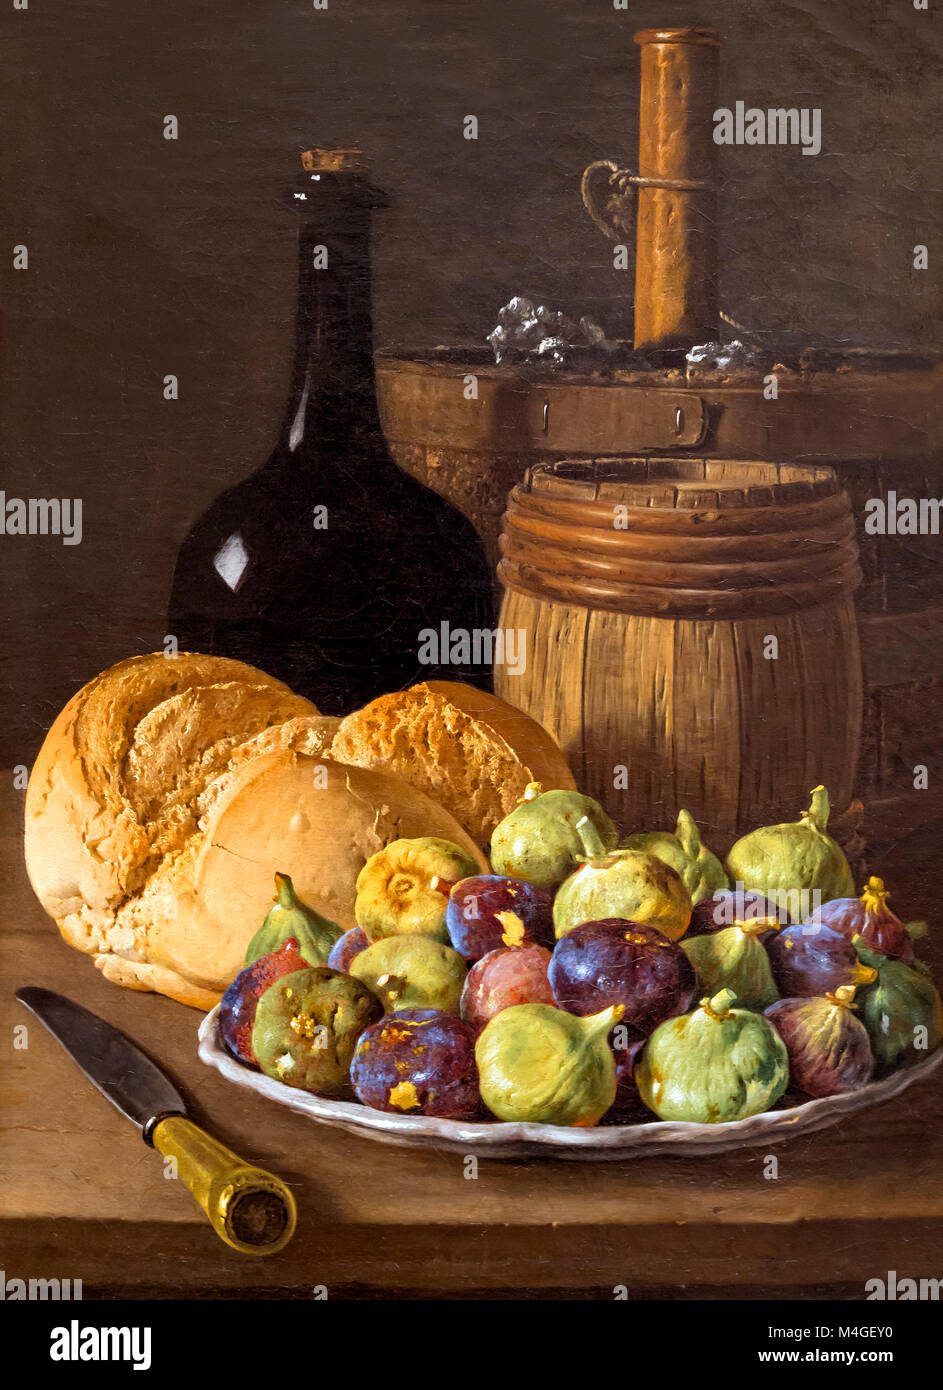 Still Life with Figs and Bread, Luis Melendez, circa 1770, National Gallery of Art, Washington DC, USA, North America - Stock Image